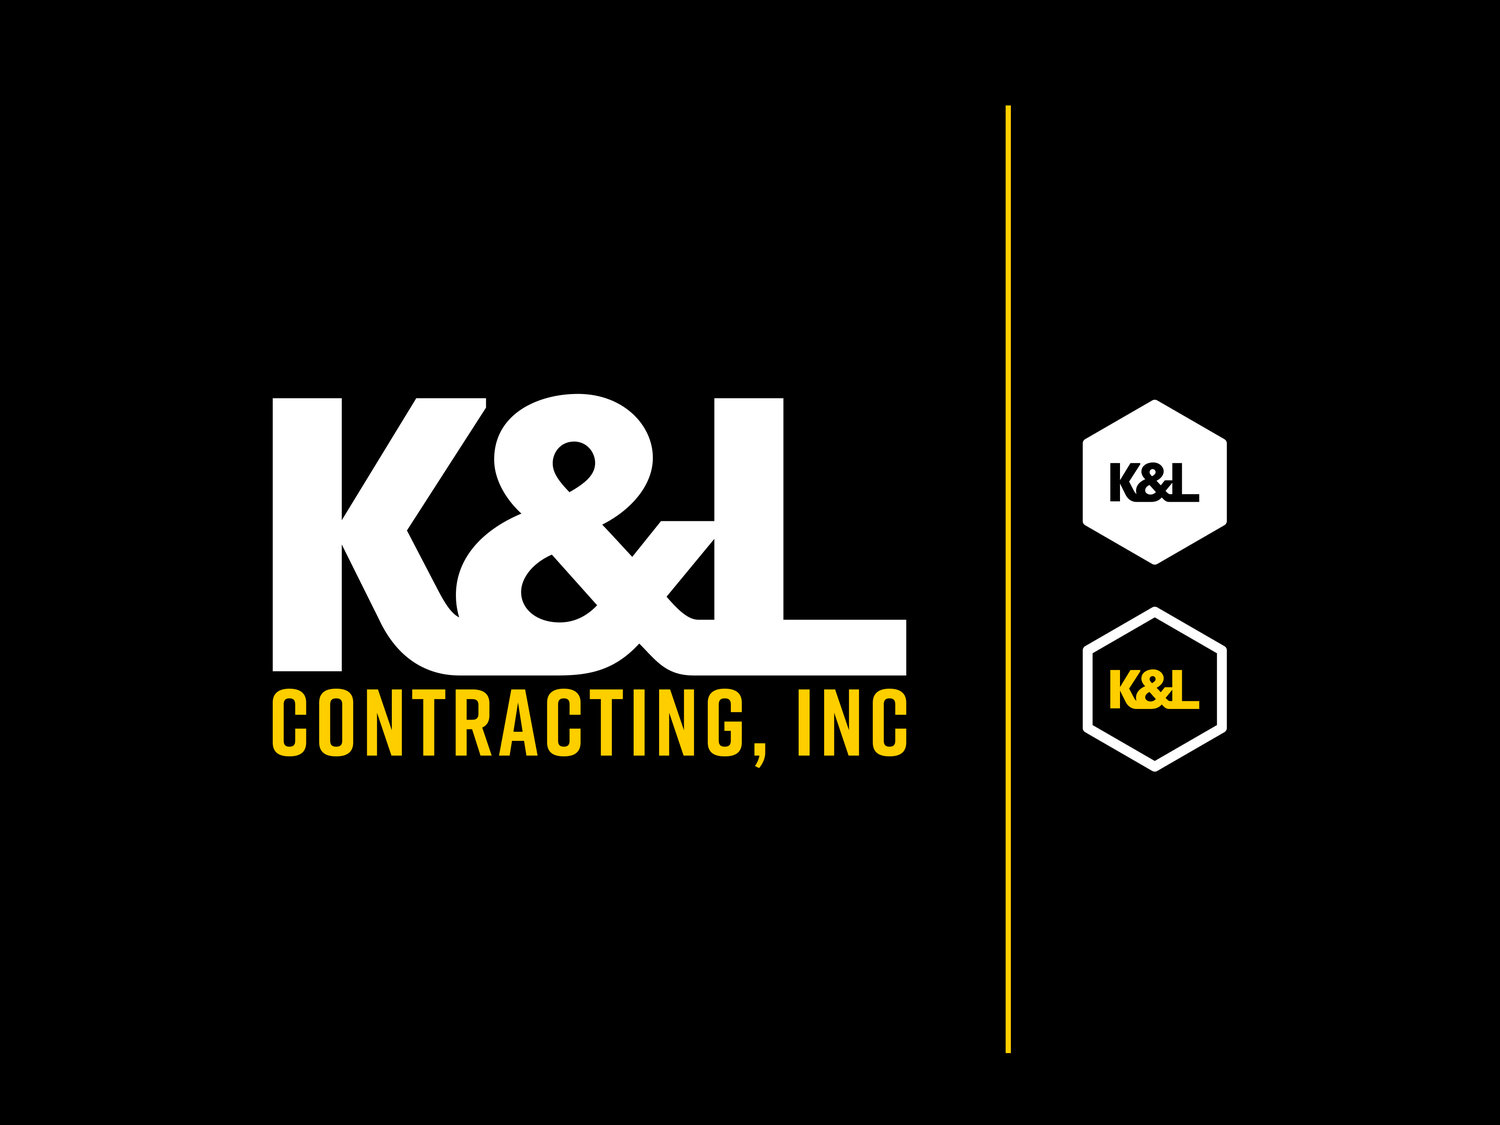 K&L Contracting, Inc -